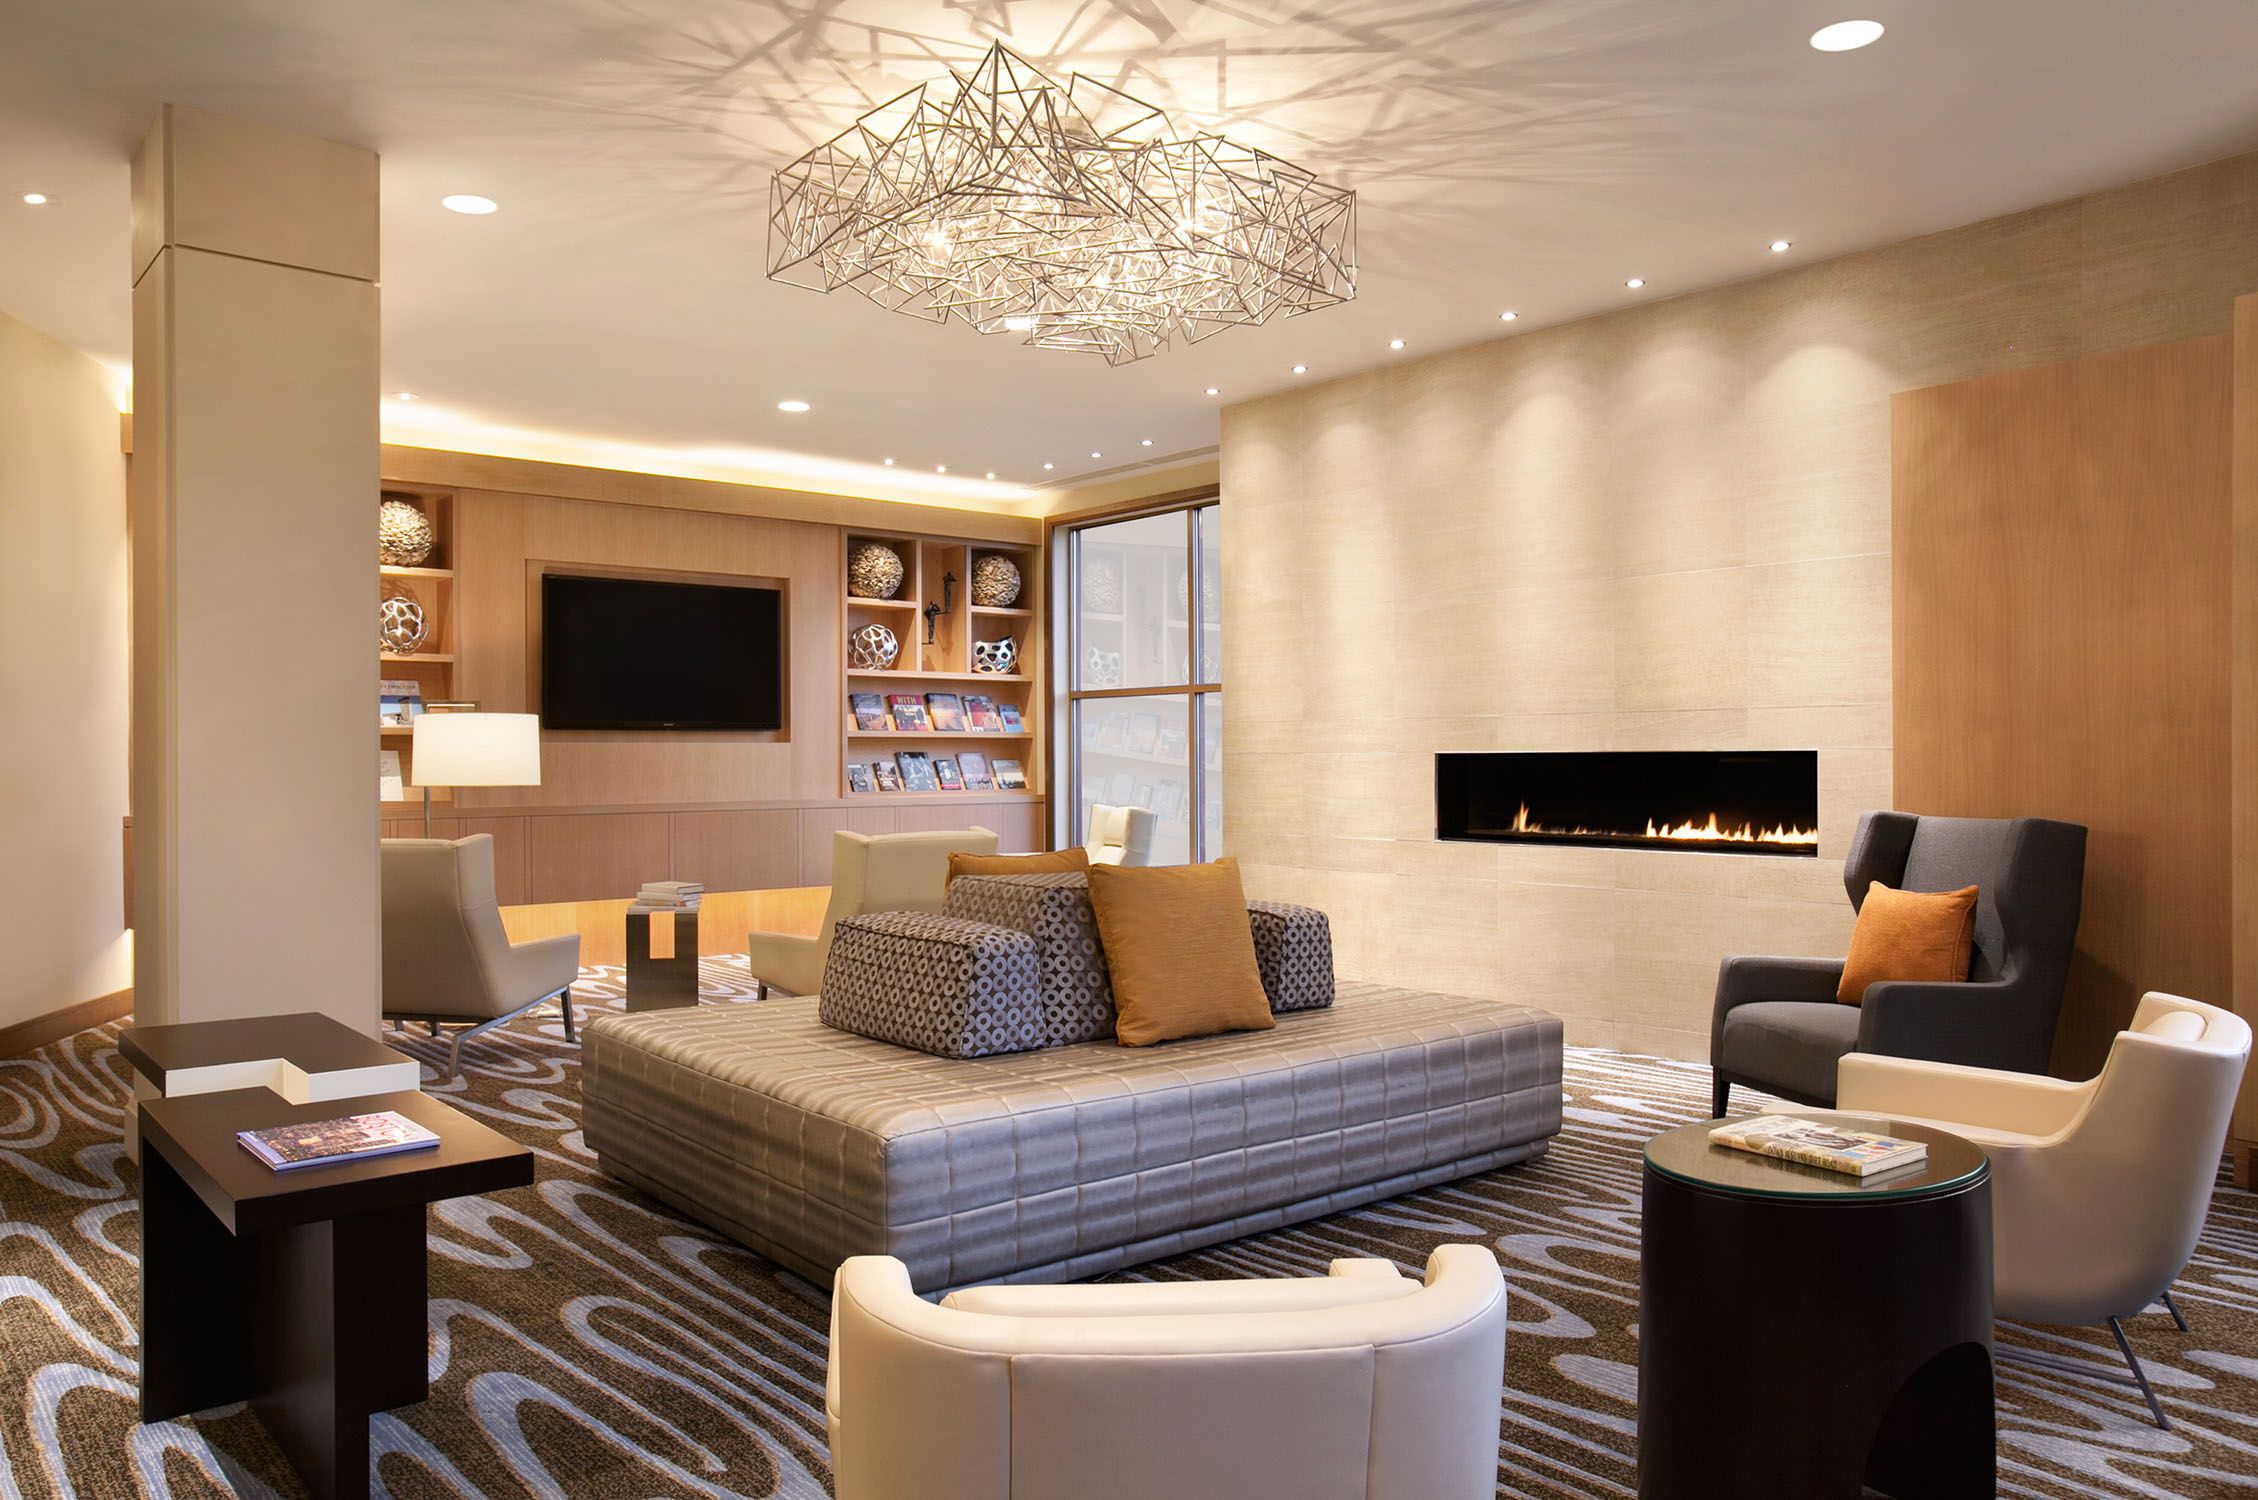 fireplace in lobby - Google Search   LS Condos.   Pinterest ...